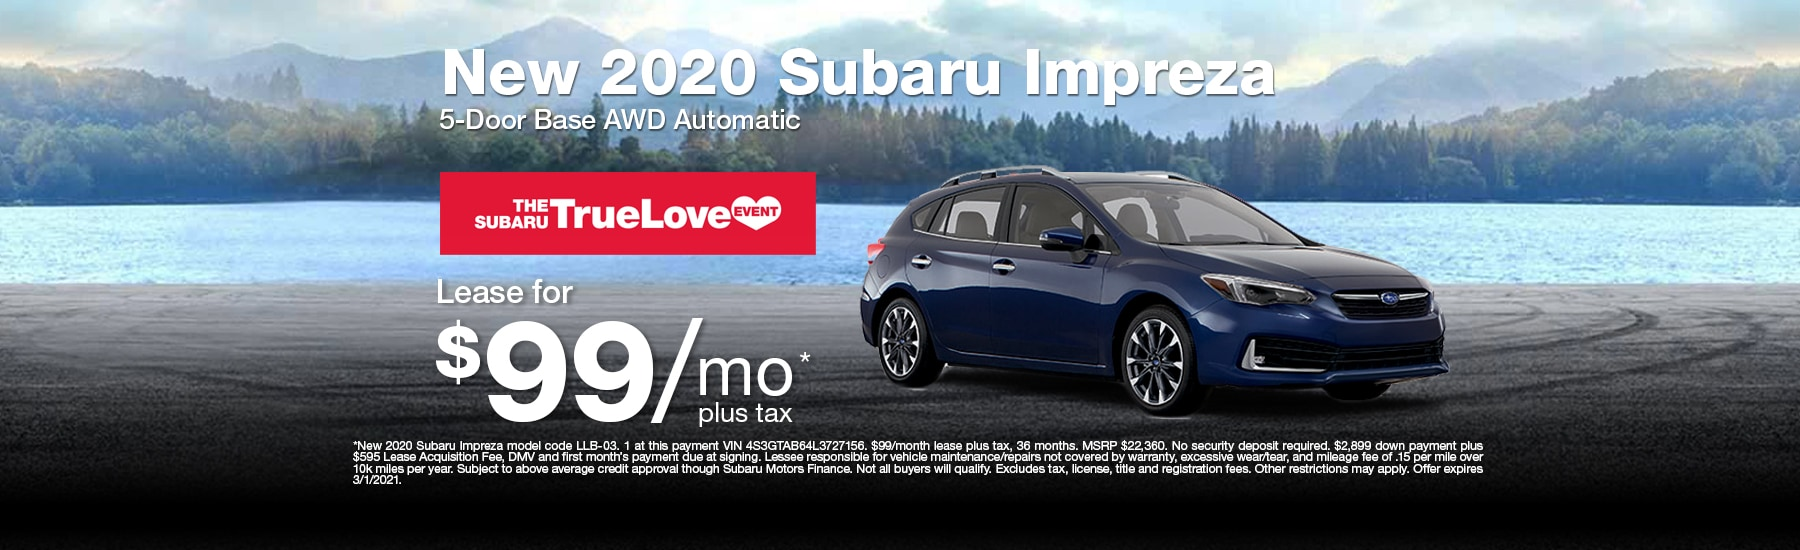 Special Lease offer on new Impreza at Timmons Subaru of Long Beach